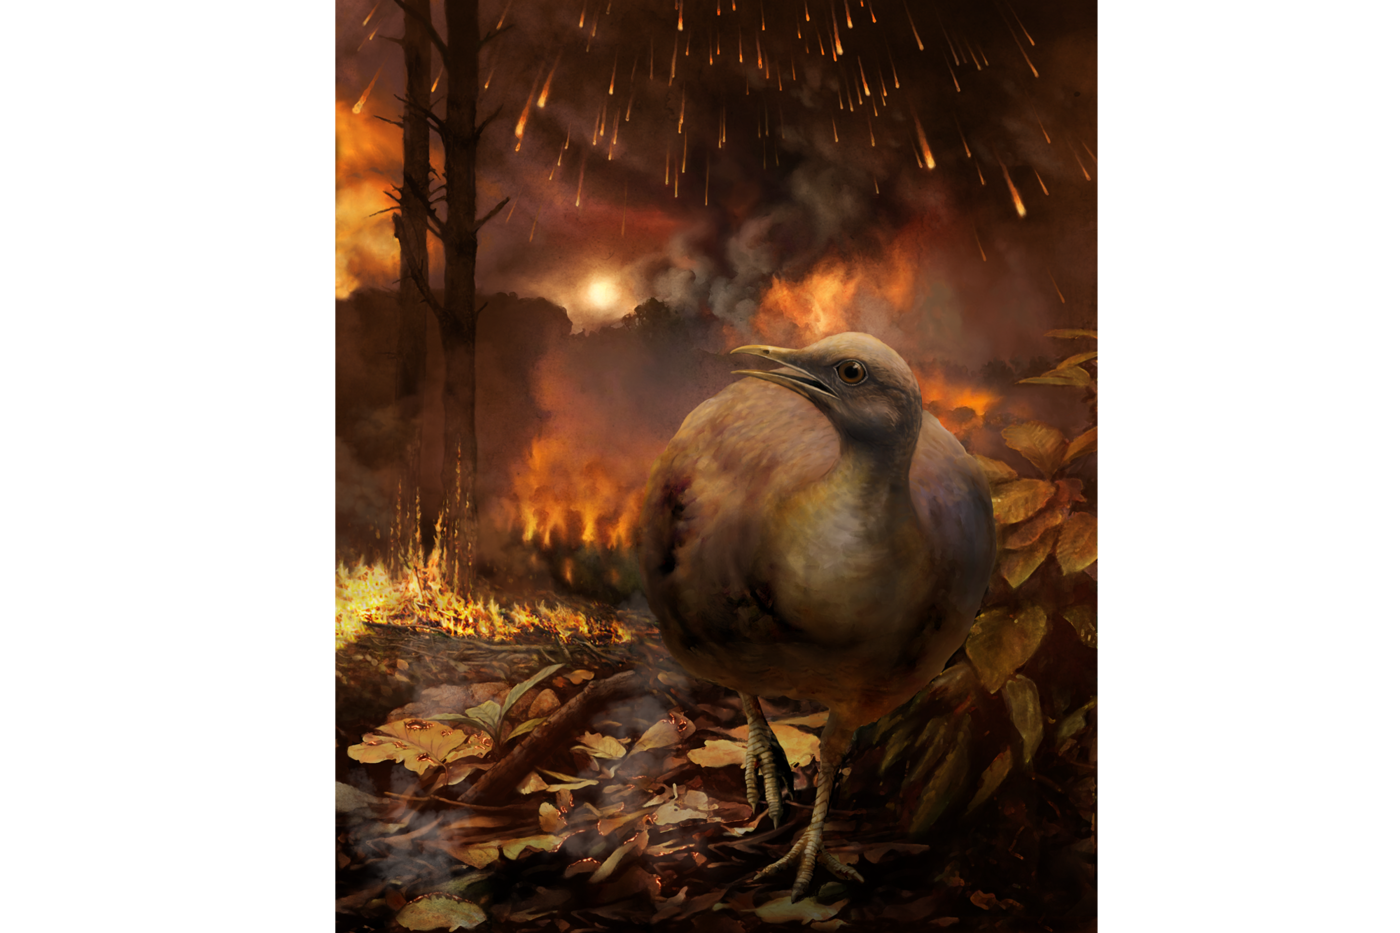 Illustration of prehistoric bird fleeing fire after an asteroid impact. Flames and smoke visible in background.